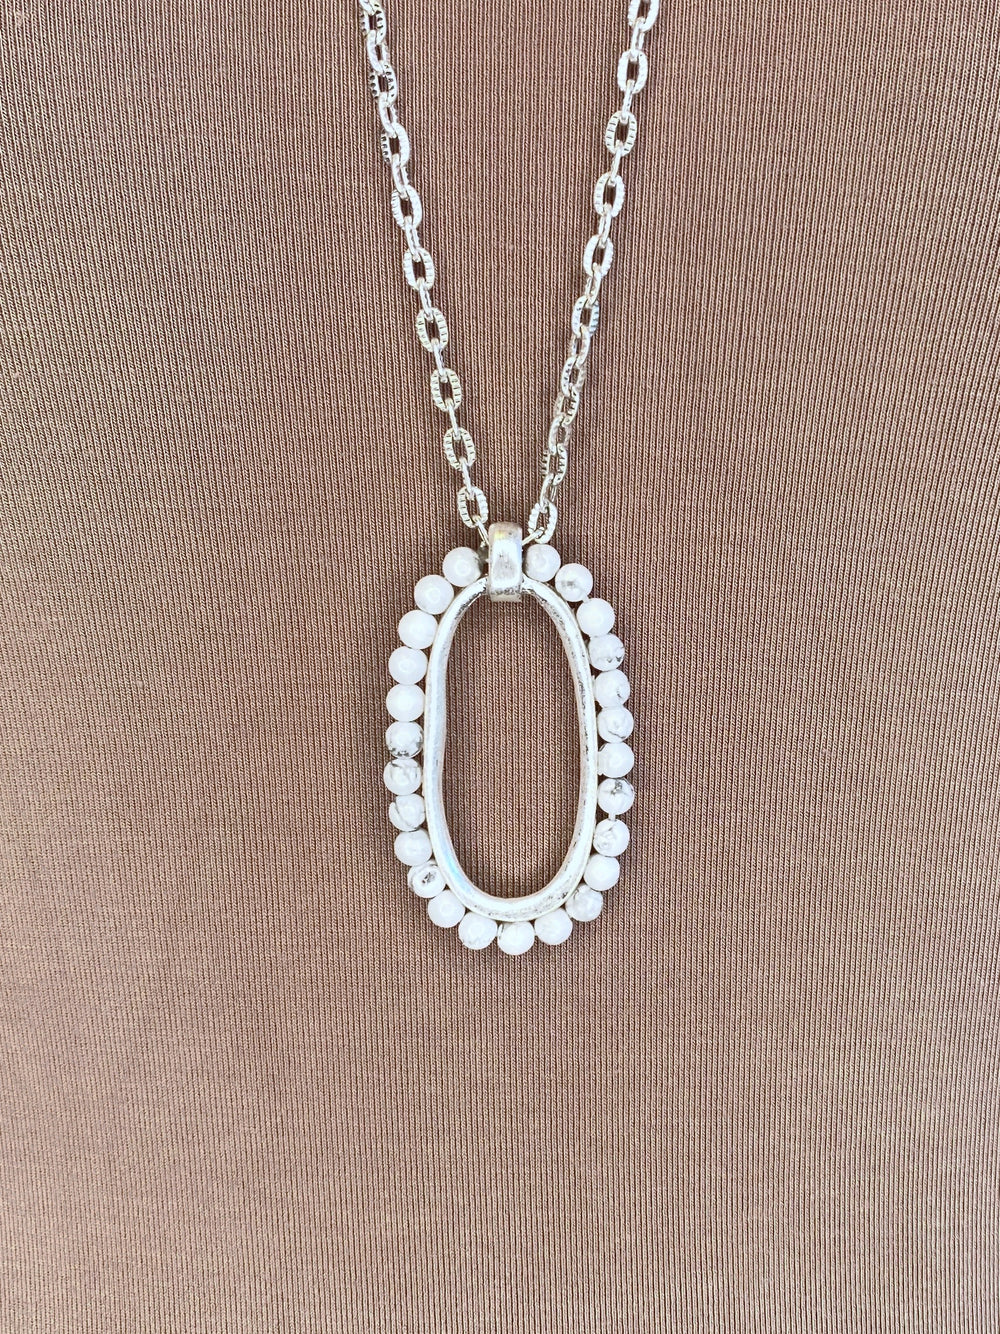 NECKLACE: Howlite Look